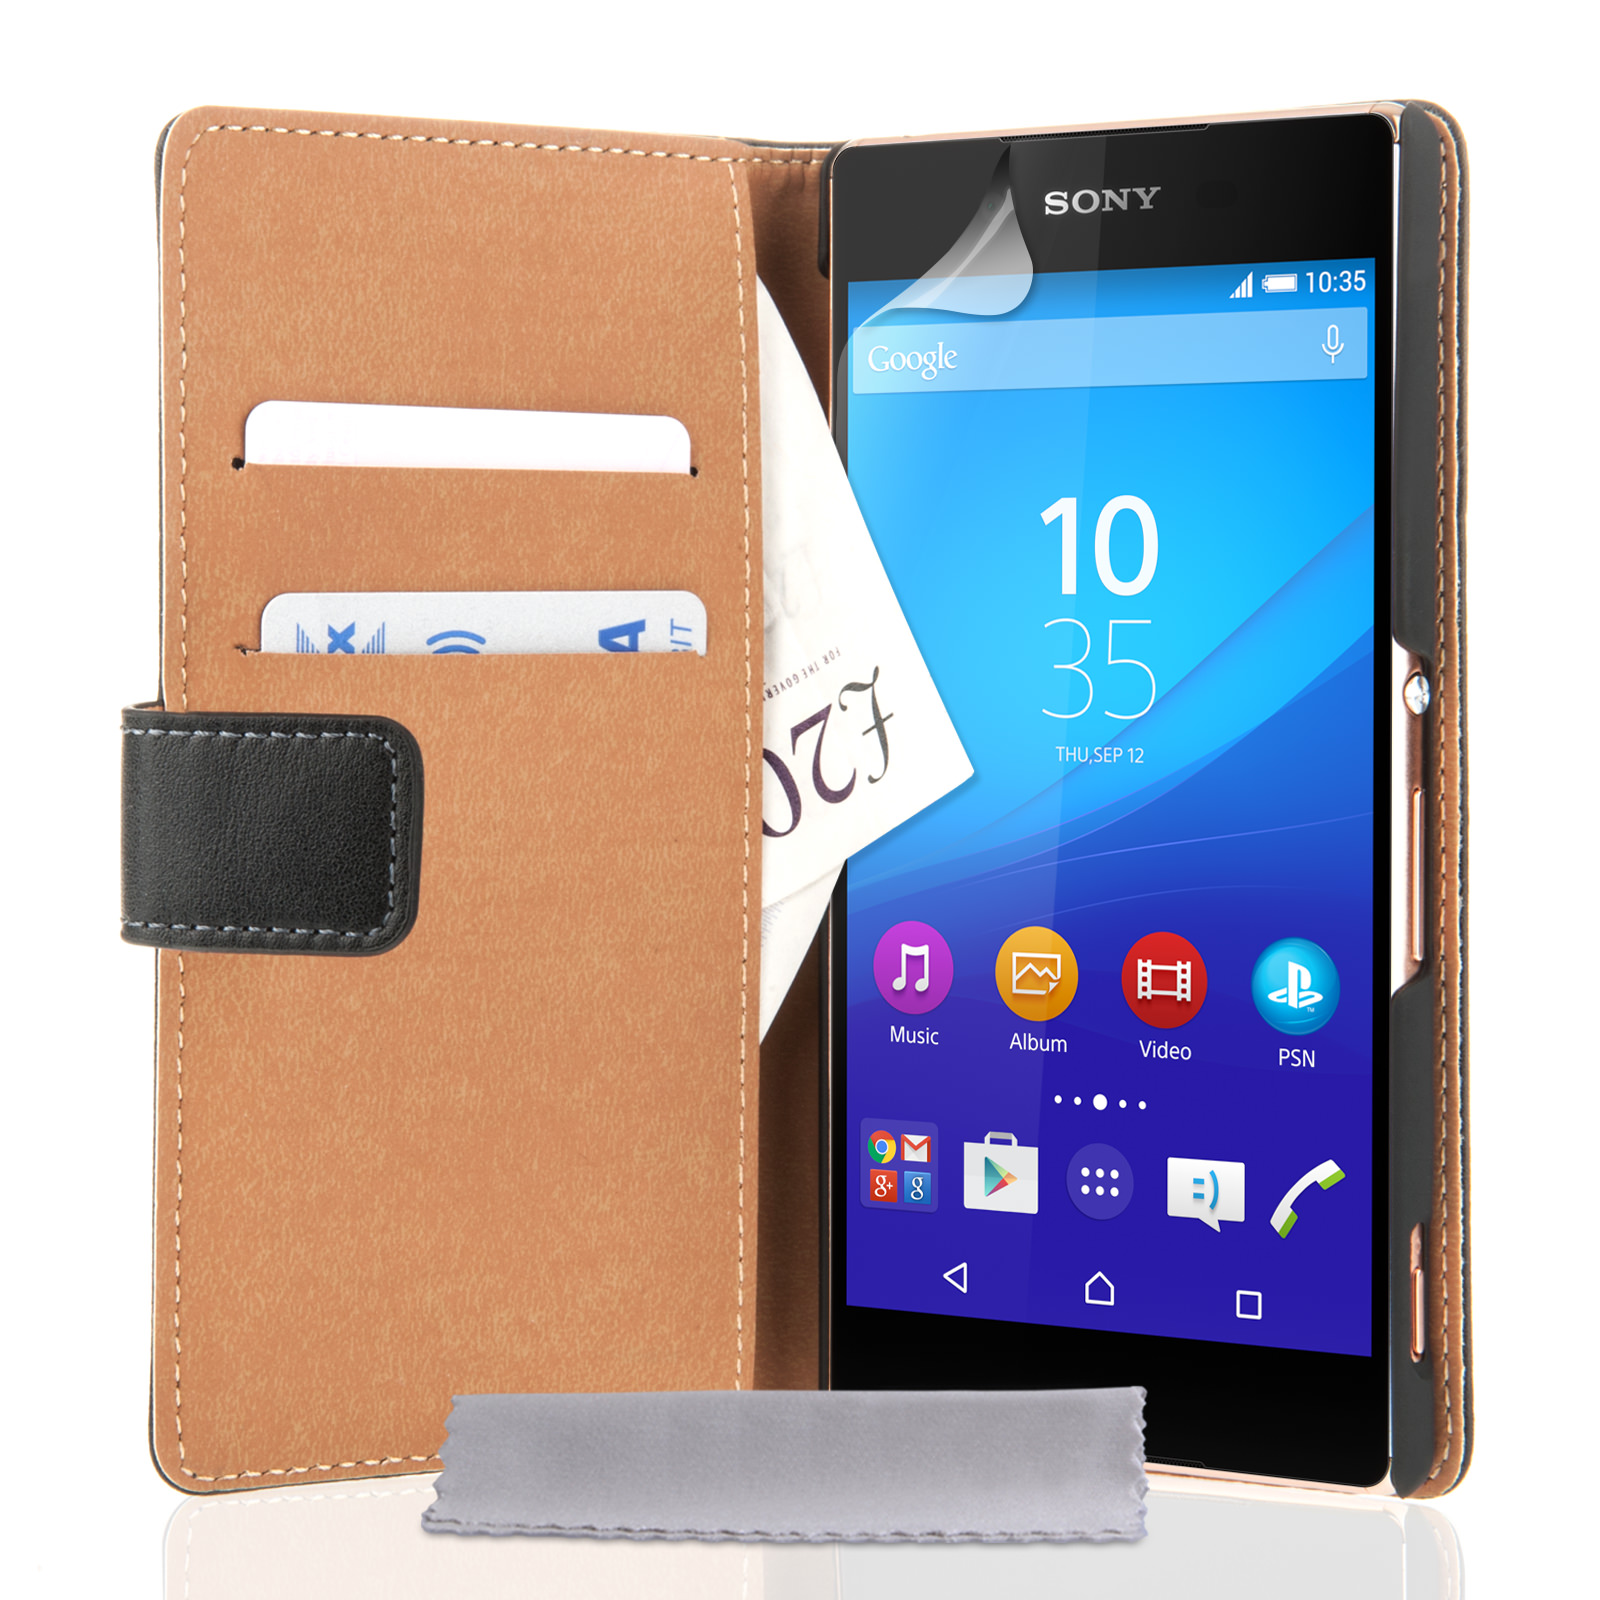 Caseflex Sony Xperia Z3+ Real Leather Wallet Case - Black